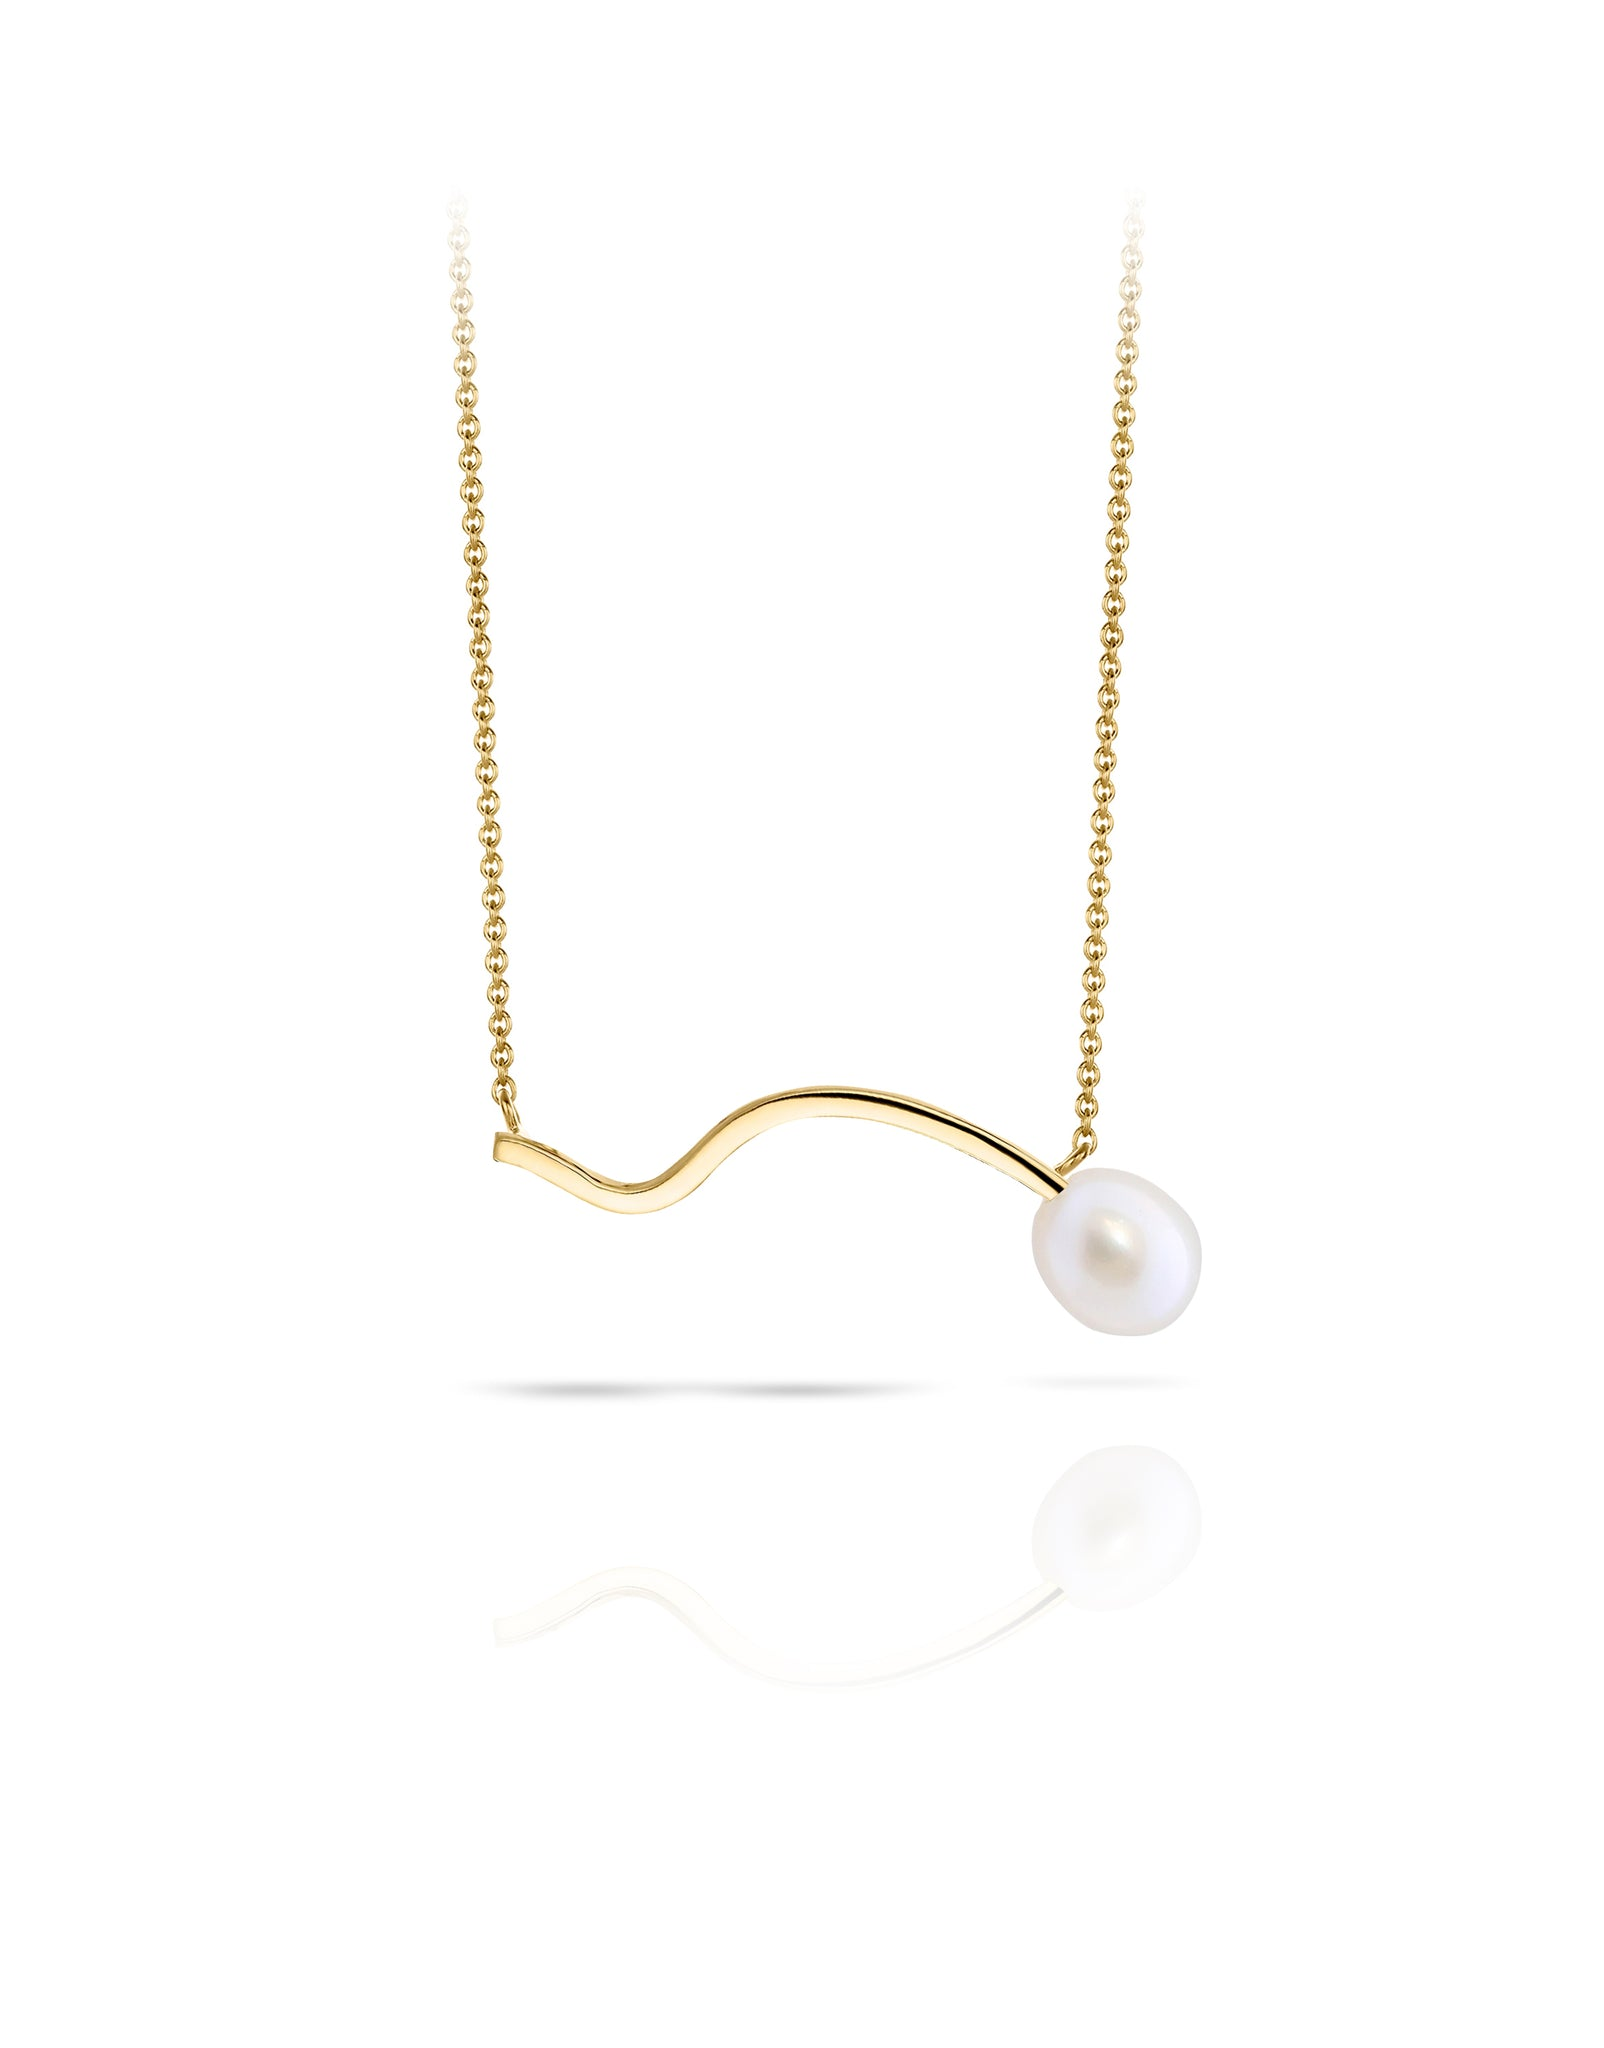 Necklace 18K gold pearl - Lina pearl necklace - Nayestones